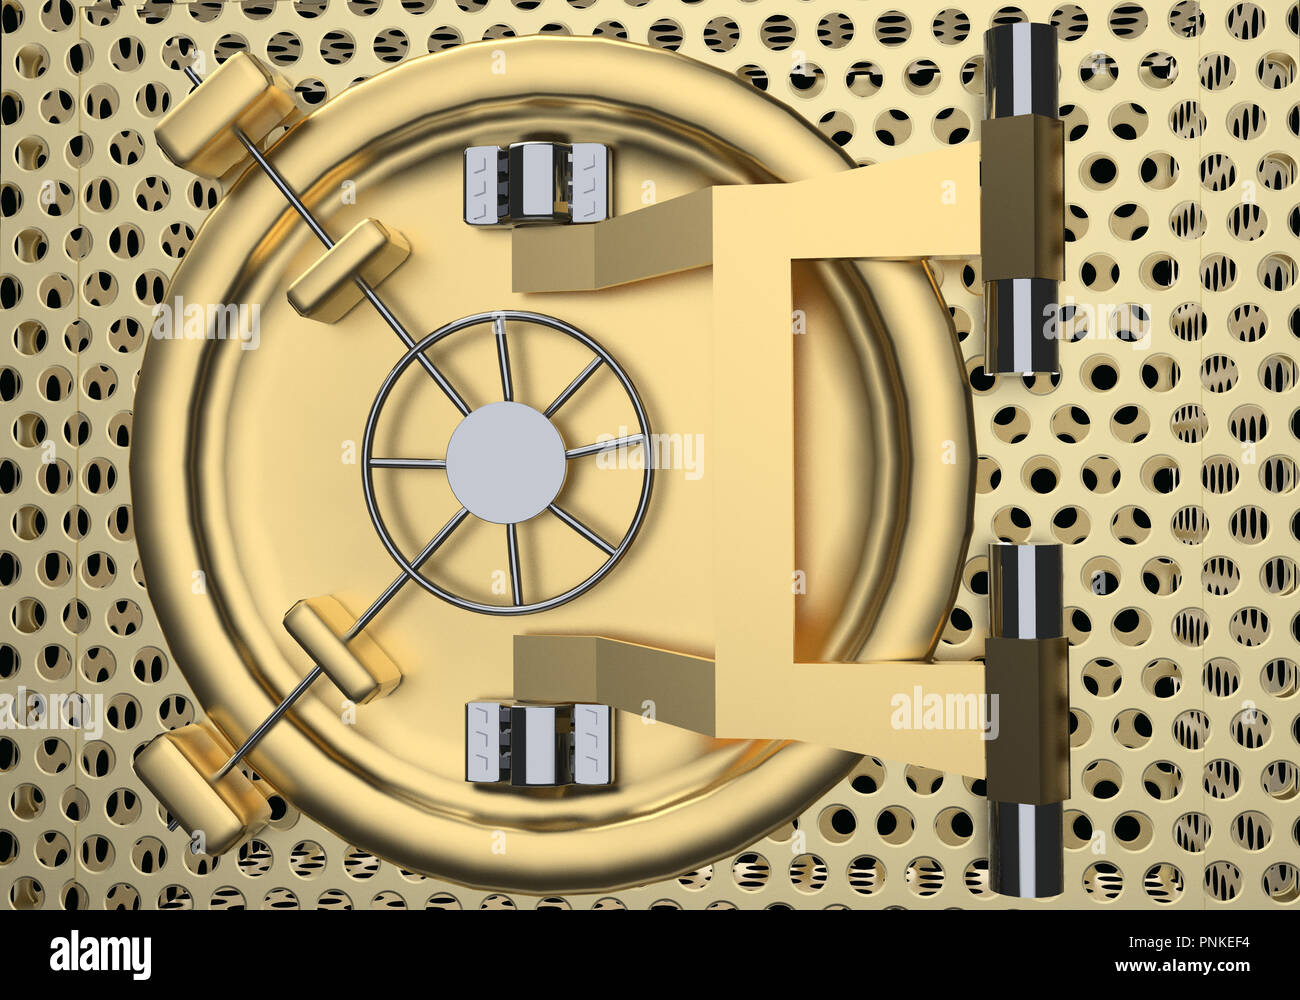 Bank Vault Door 3D rendering close up - Stock Image